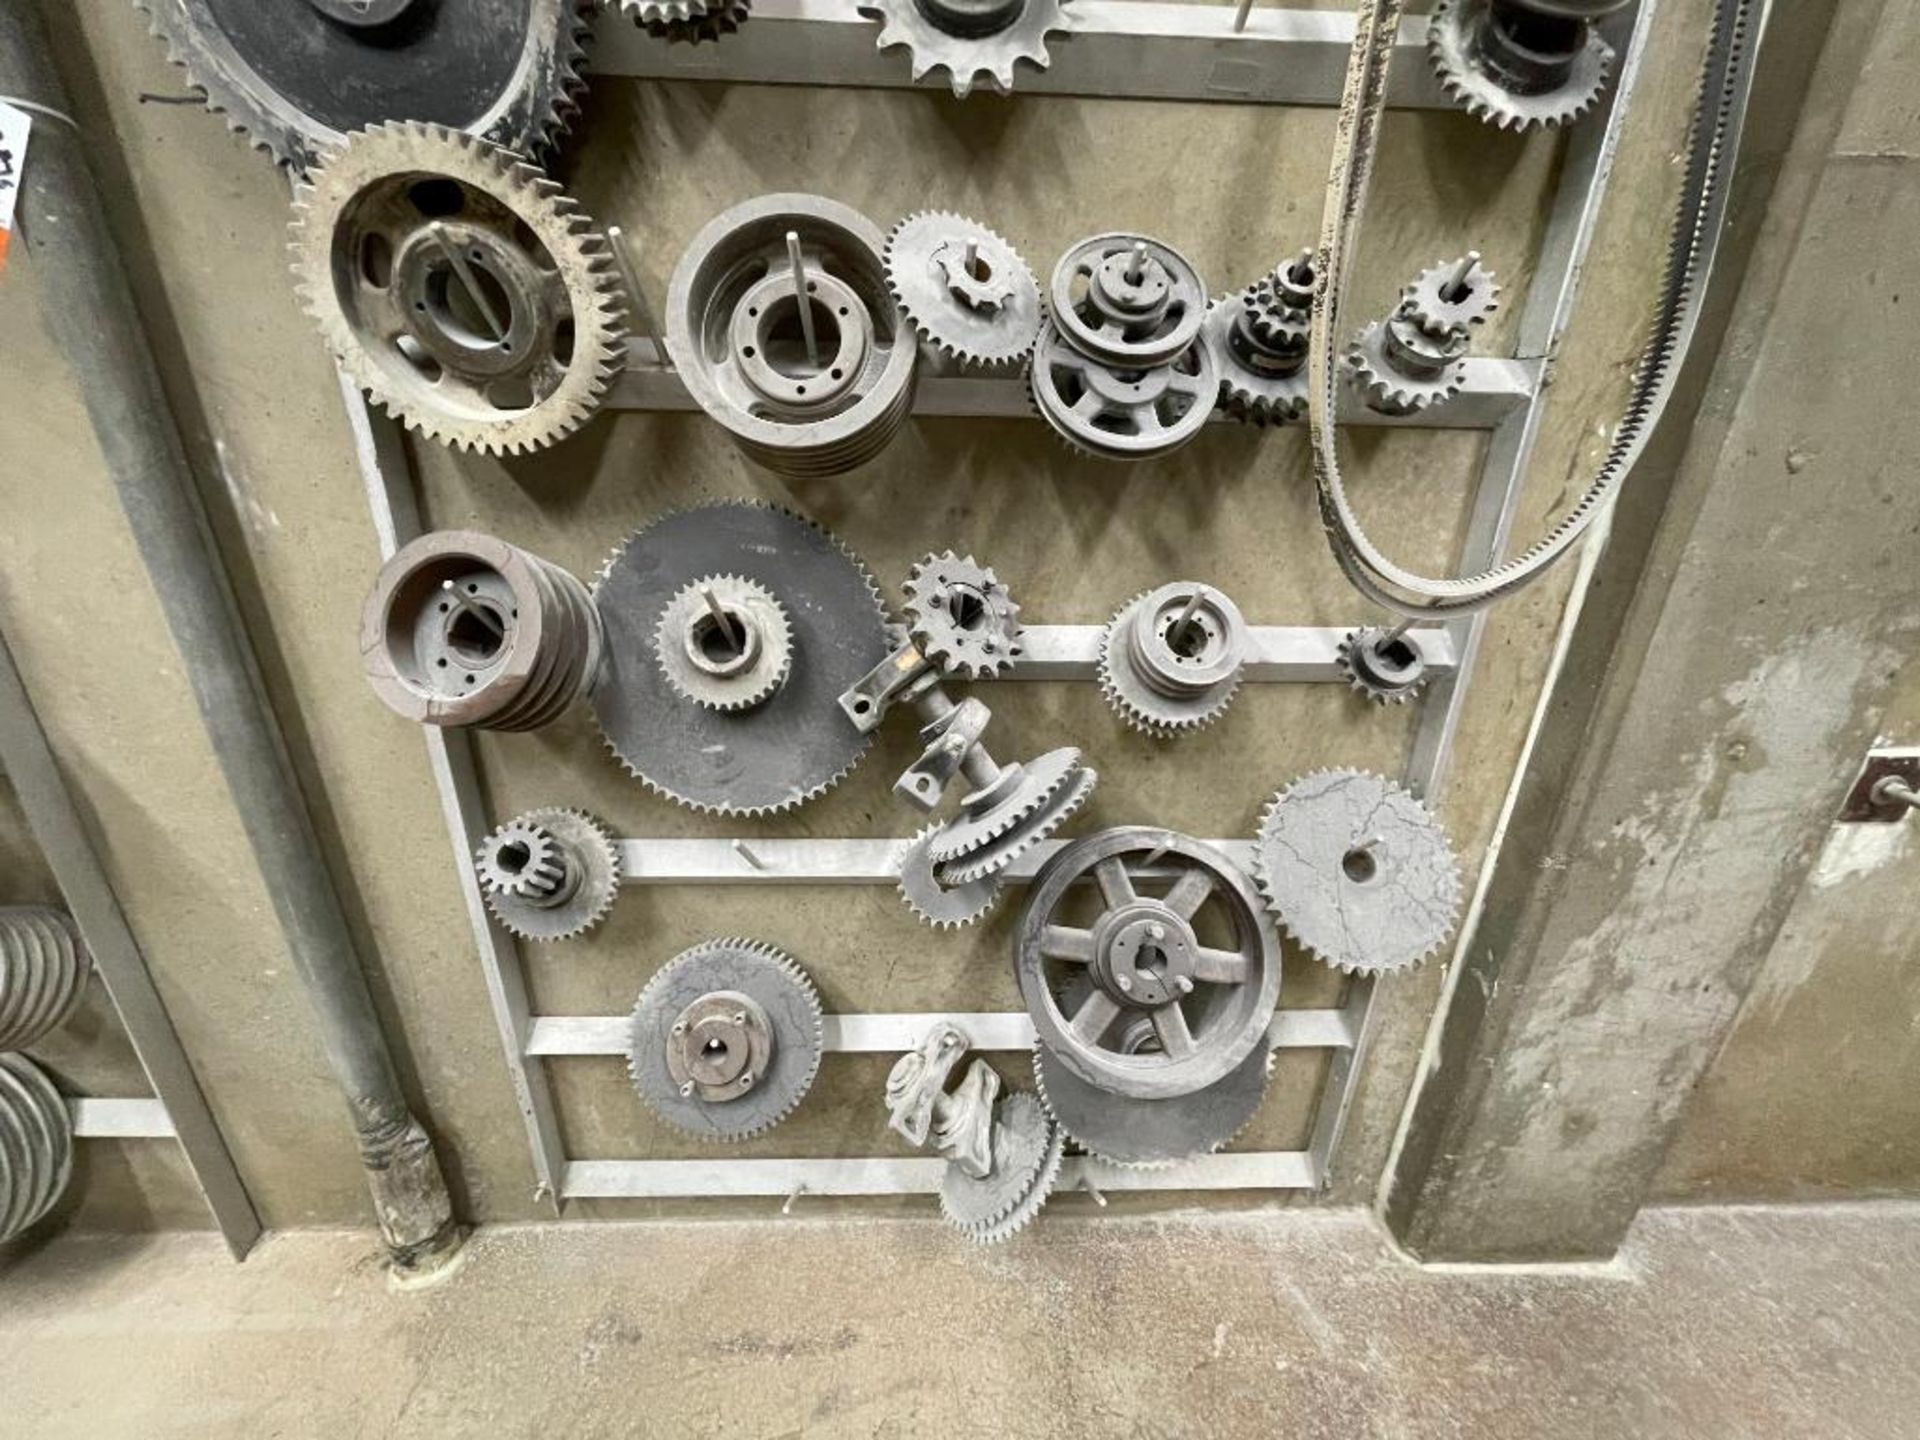 gears and pulleys - Image 5 of 17